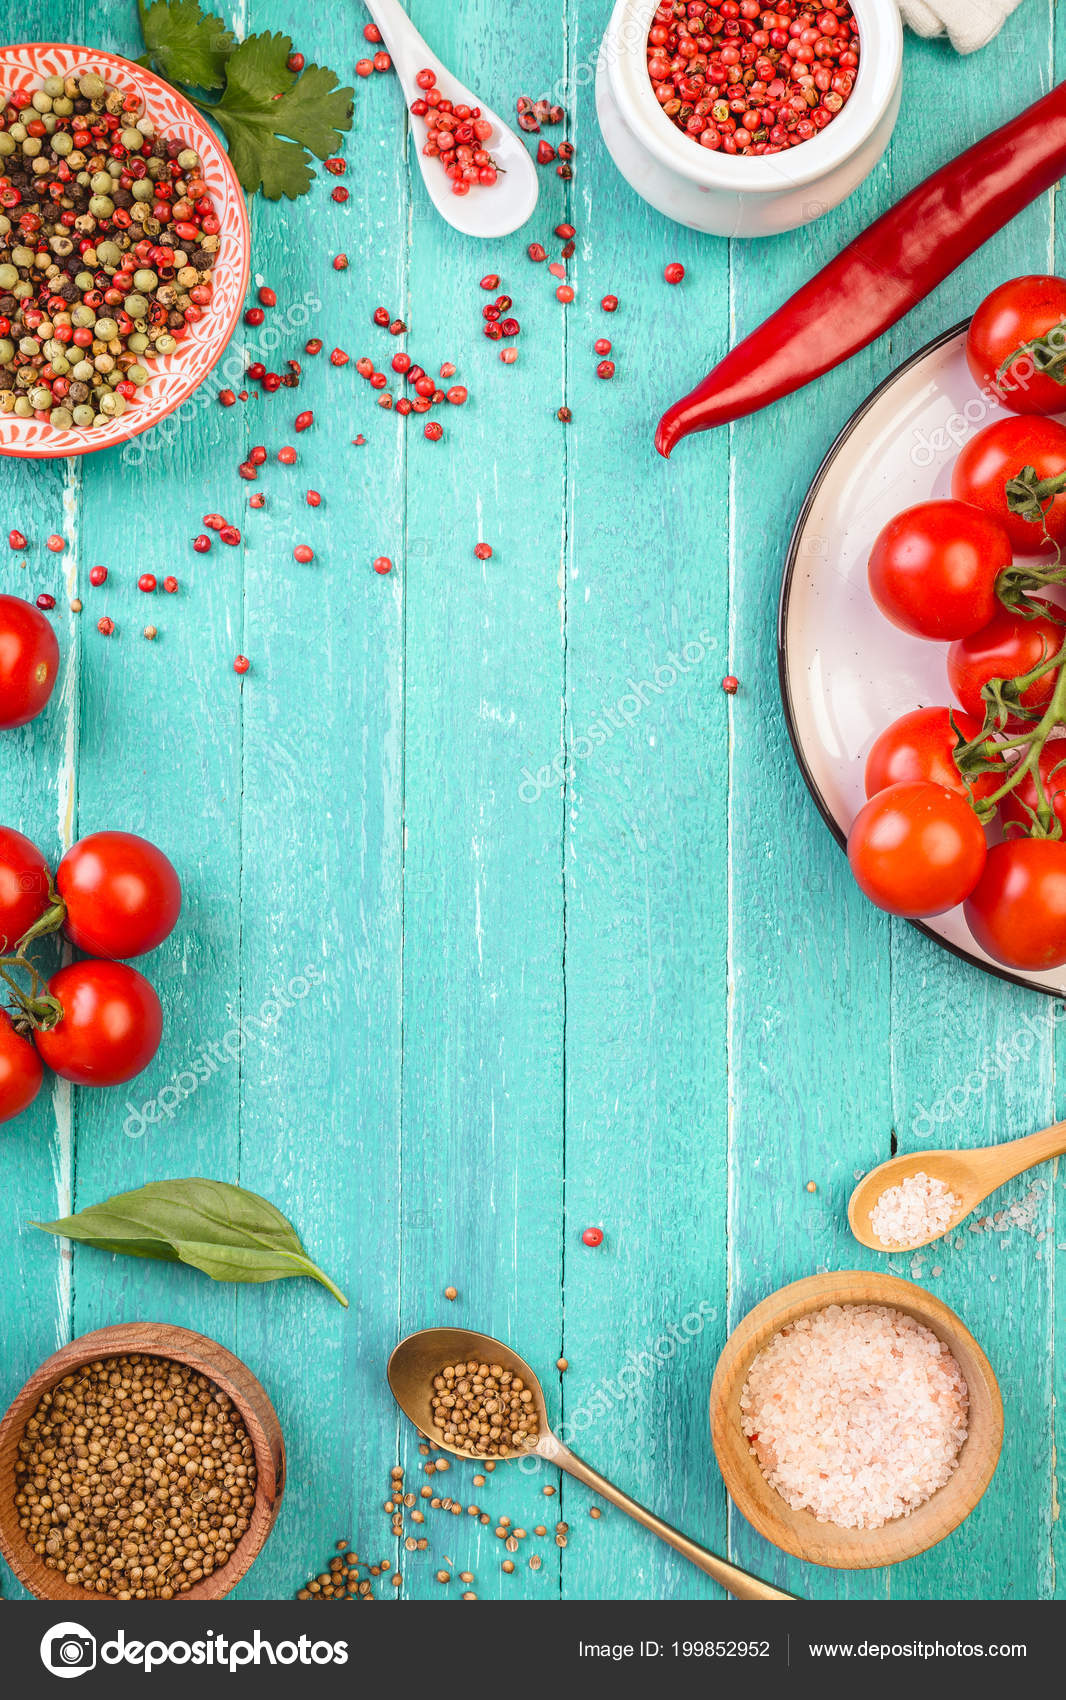 Red Food Background : background, Frame, Vegetables, Spices, Background, Stock, Photo,, Image, Yakovlevadaria, #199852952